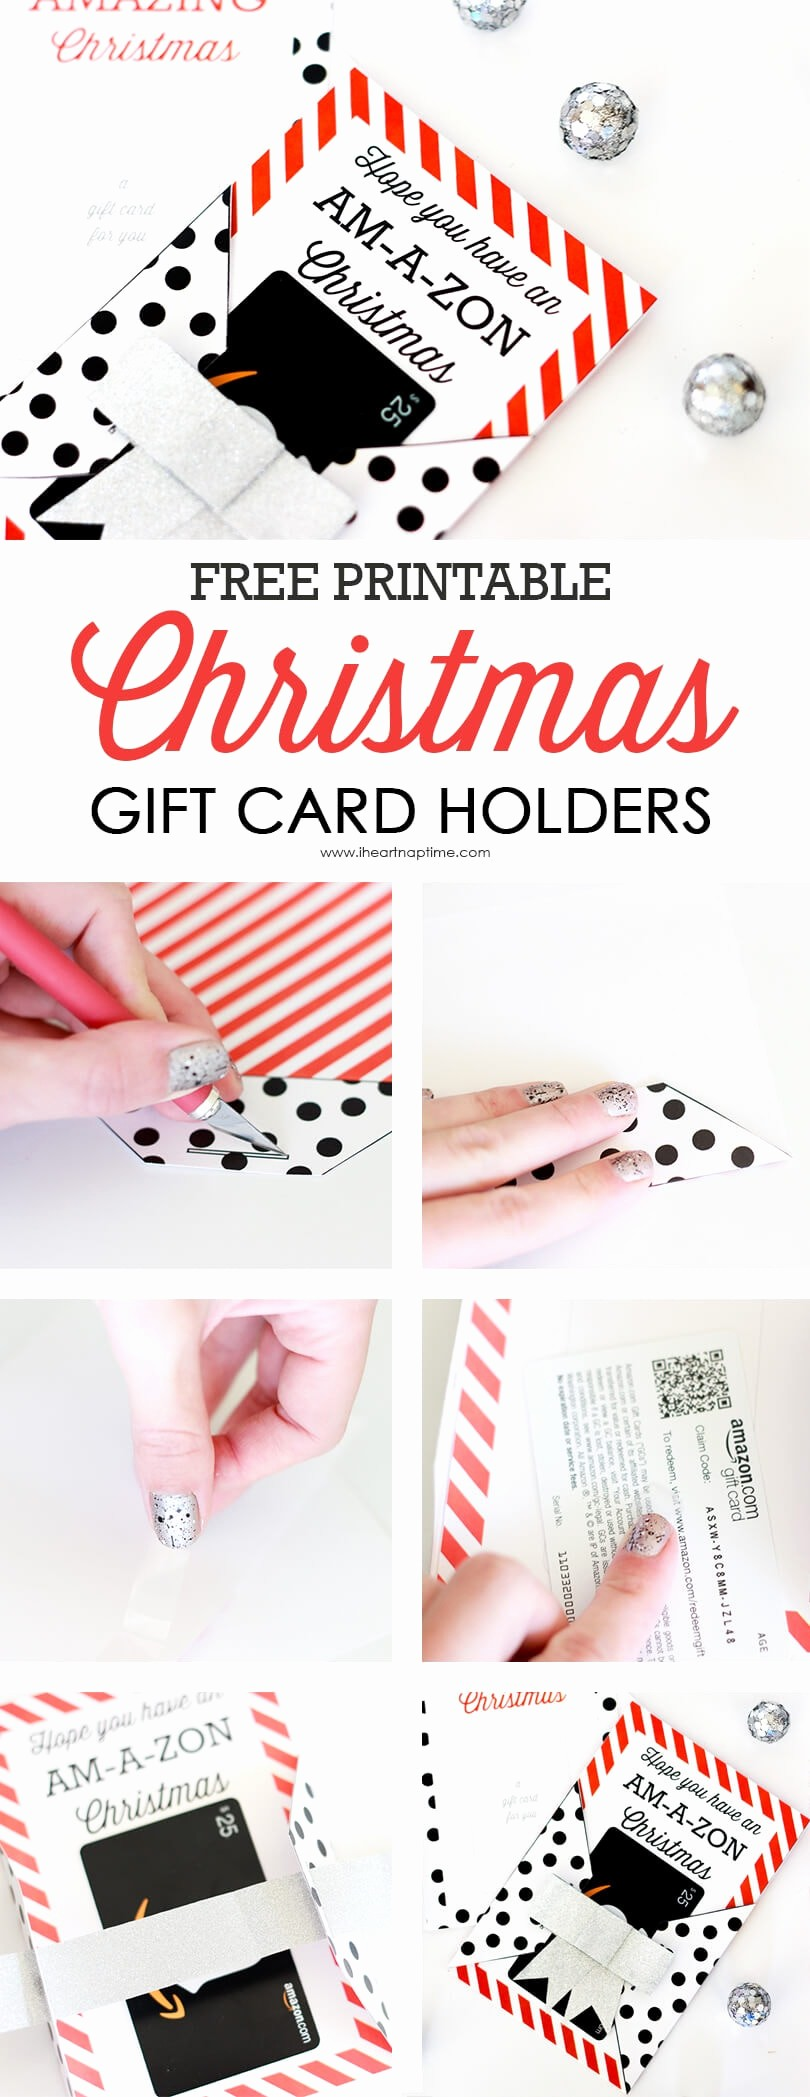 Free Printable Gift Cards Online Inspirational Free Printable Christmas Gift Card Holders I Heart Nap Time